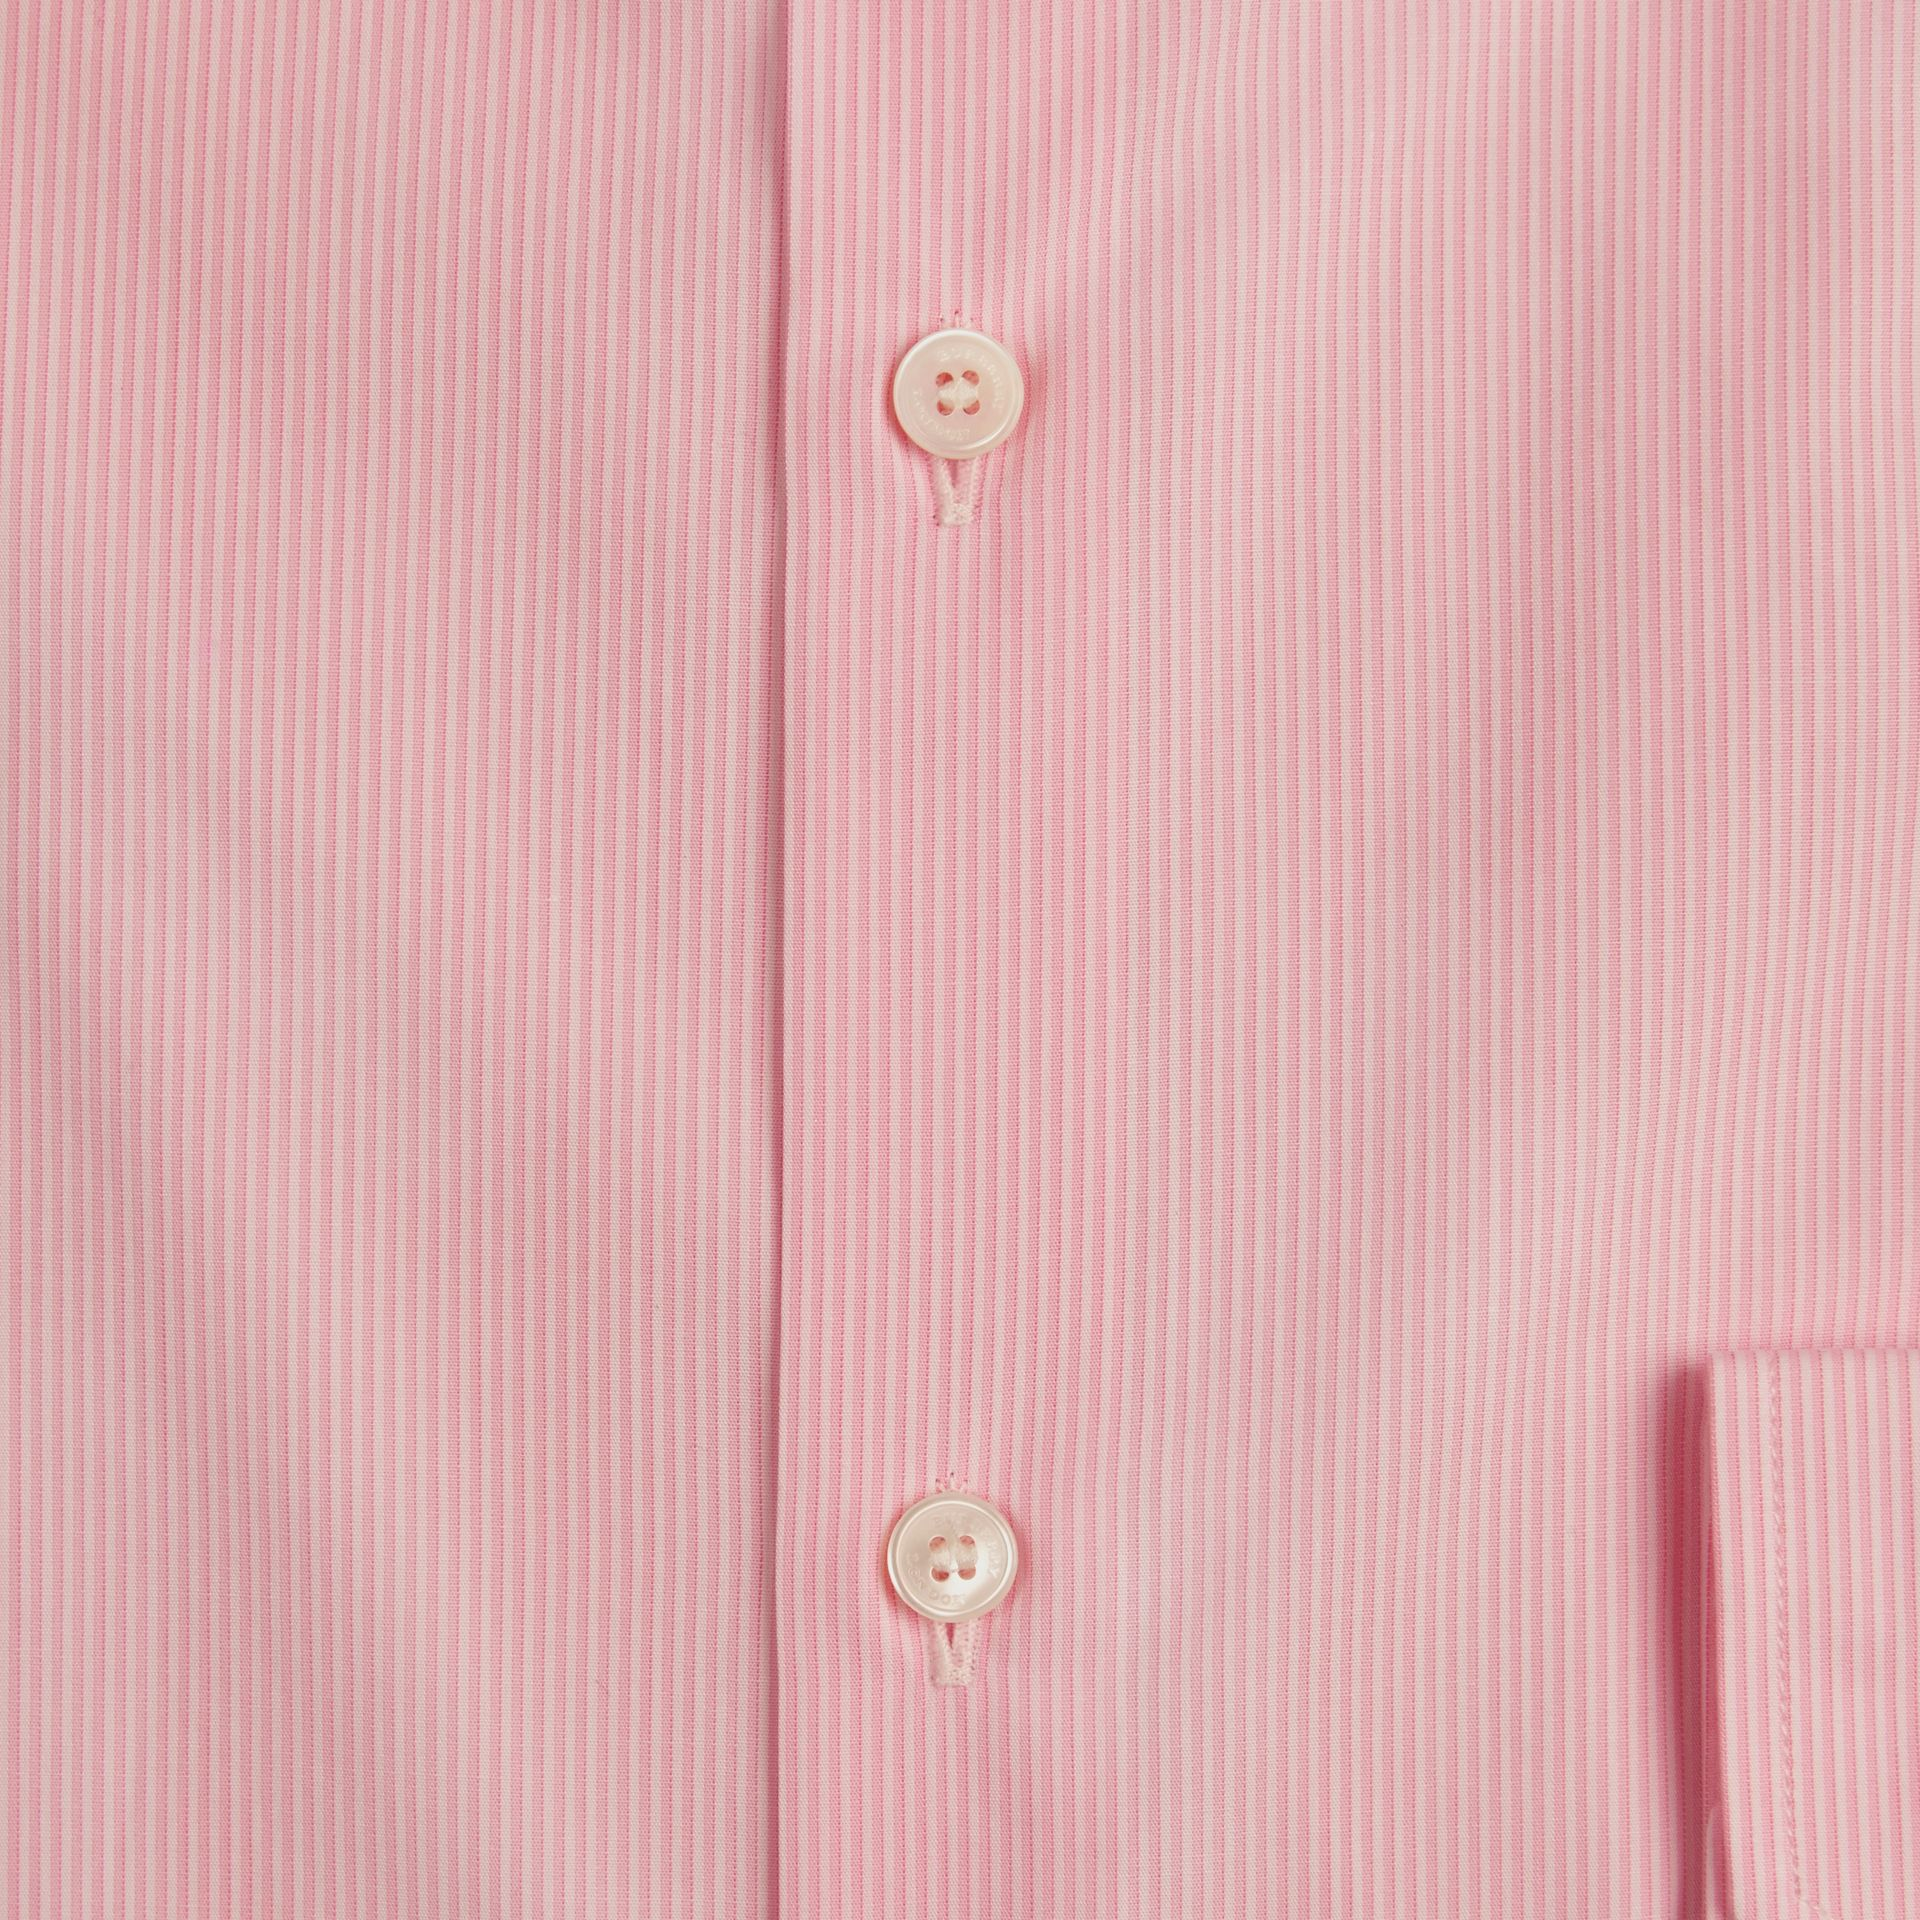 Slim Fit Cotton Poplin Shirt in City Pink - Men | Burberry - gallery image 2